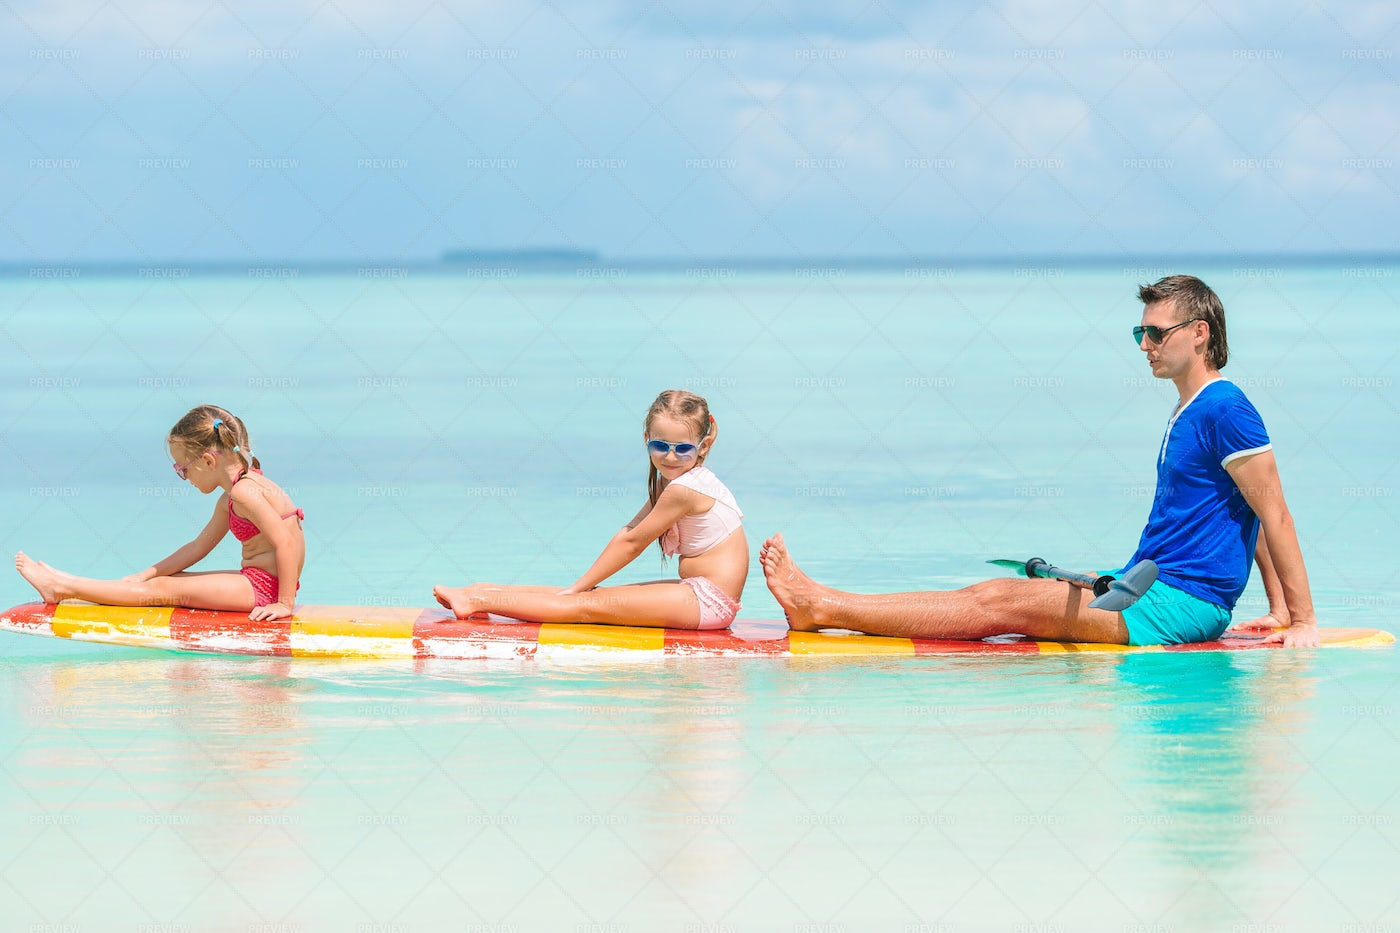 Paddle Boarding In The Caribbean: Stock Photos